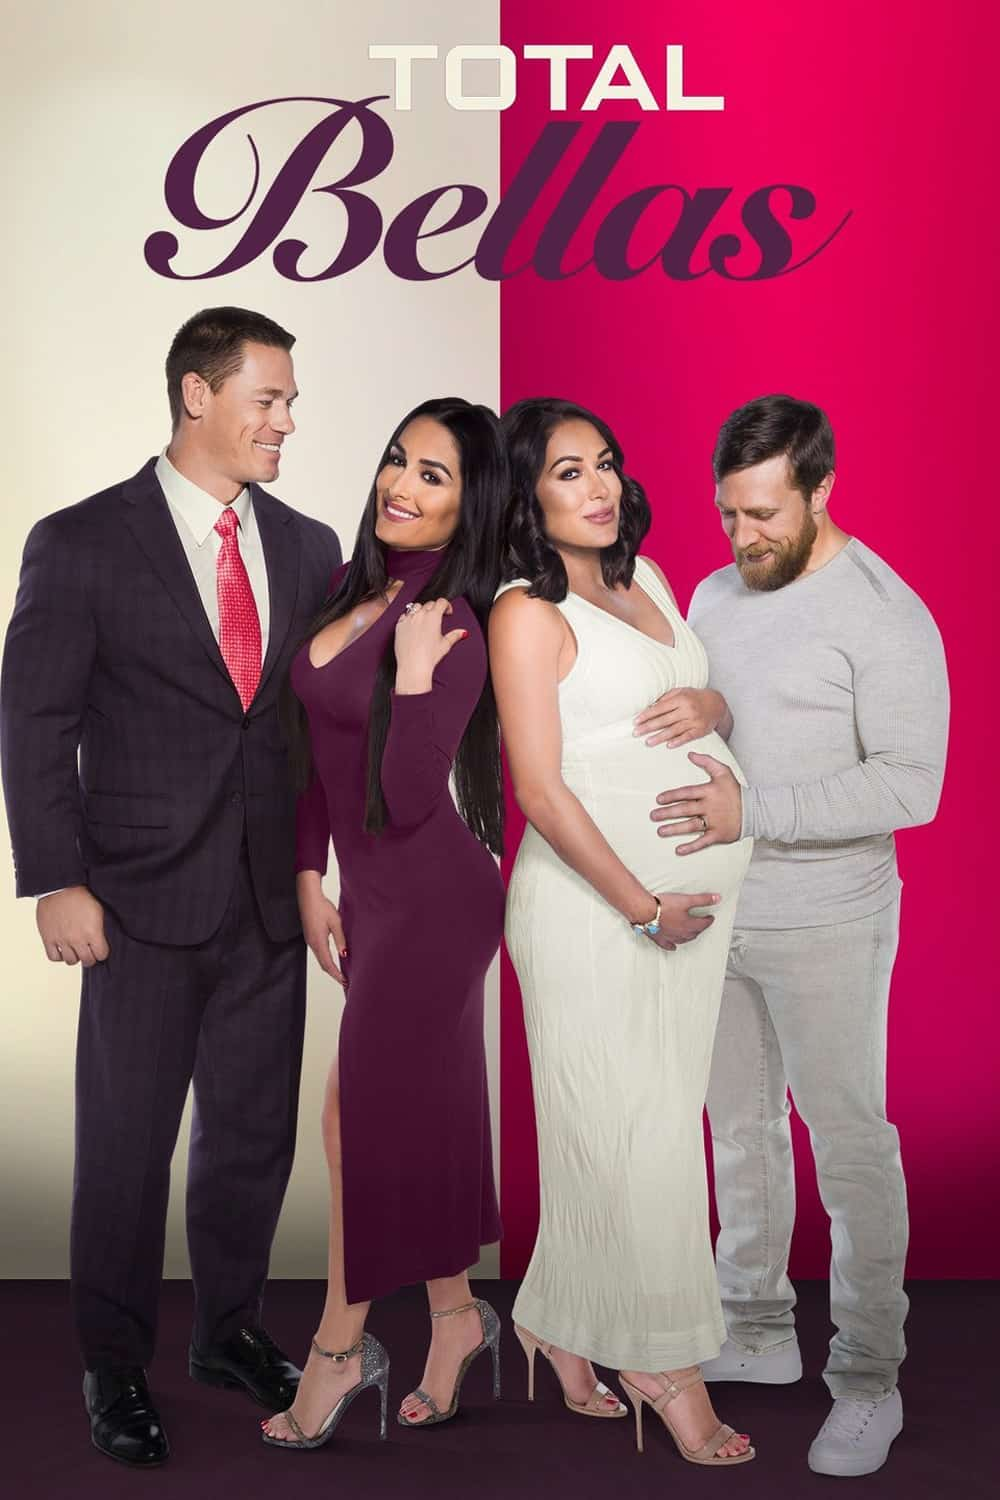 Total Bellas, 2016